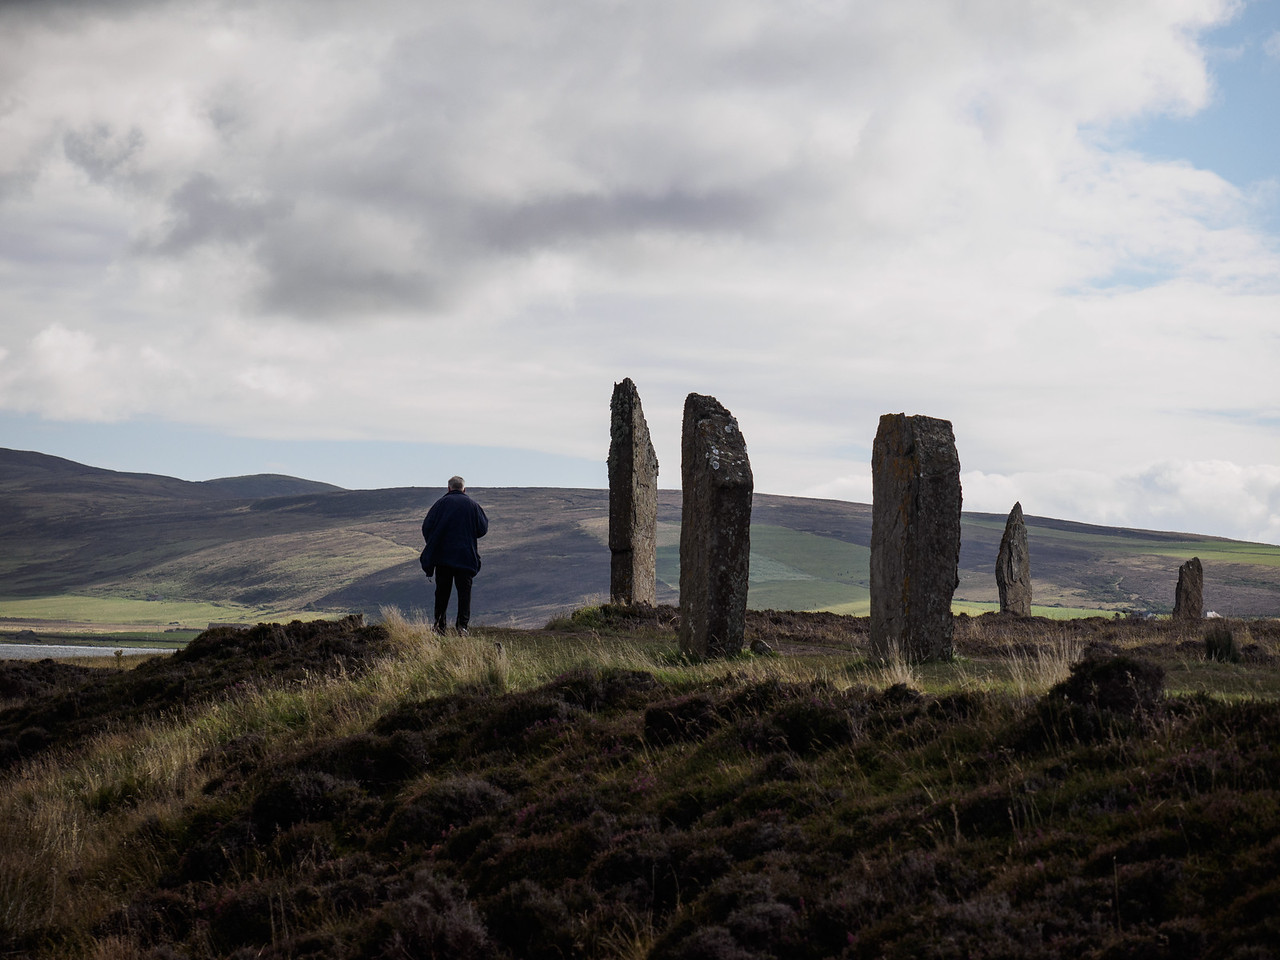 The stone circle is in a beautiful location.